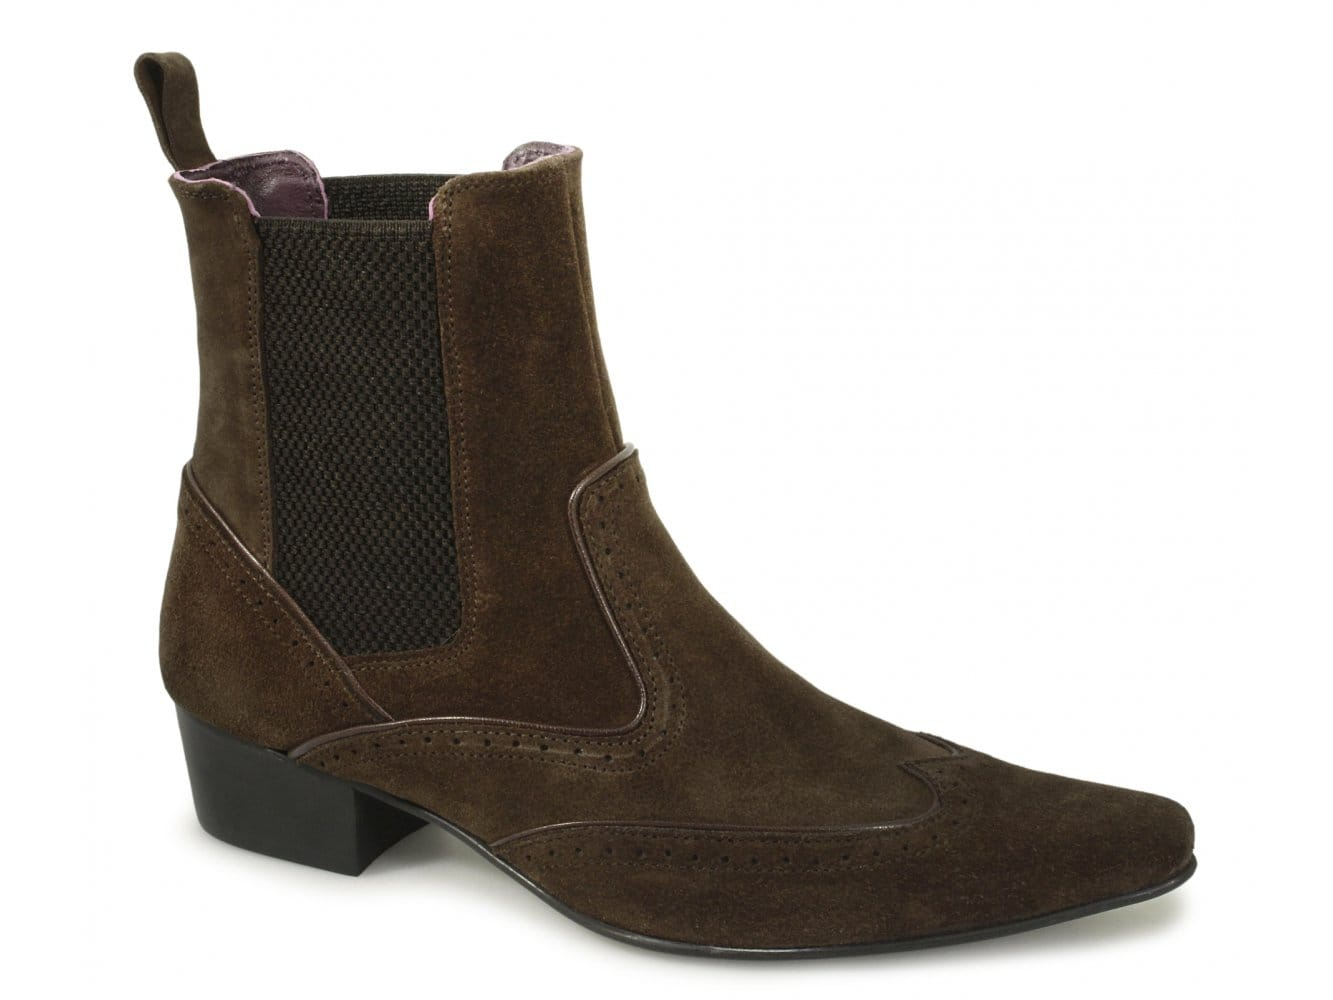 936a39a75e8 Gucinari HARLEY Mens Pointed Suede Brogue Chelsea Boots Brown